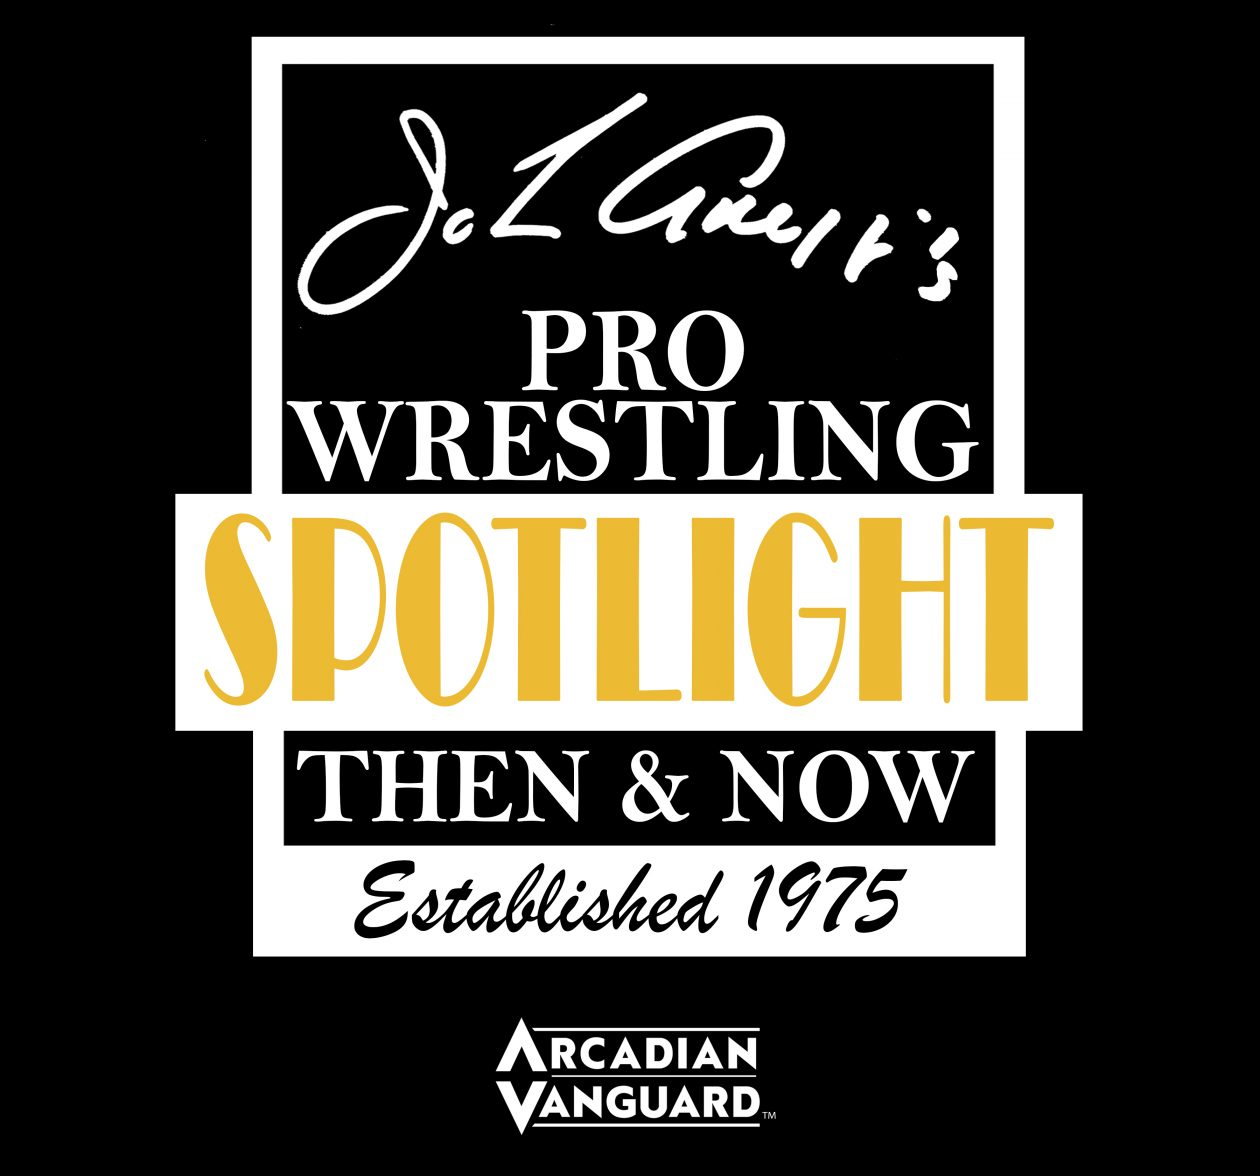 John Arezzi's Pro Wrestling Spotlight Then & Now